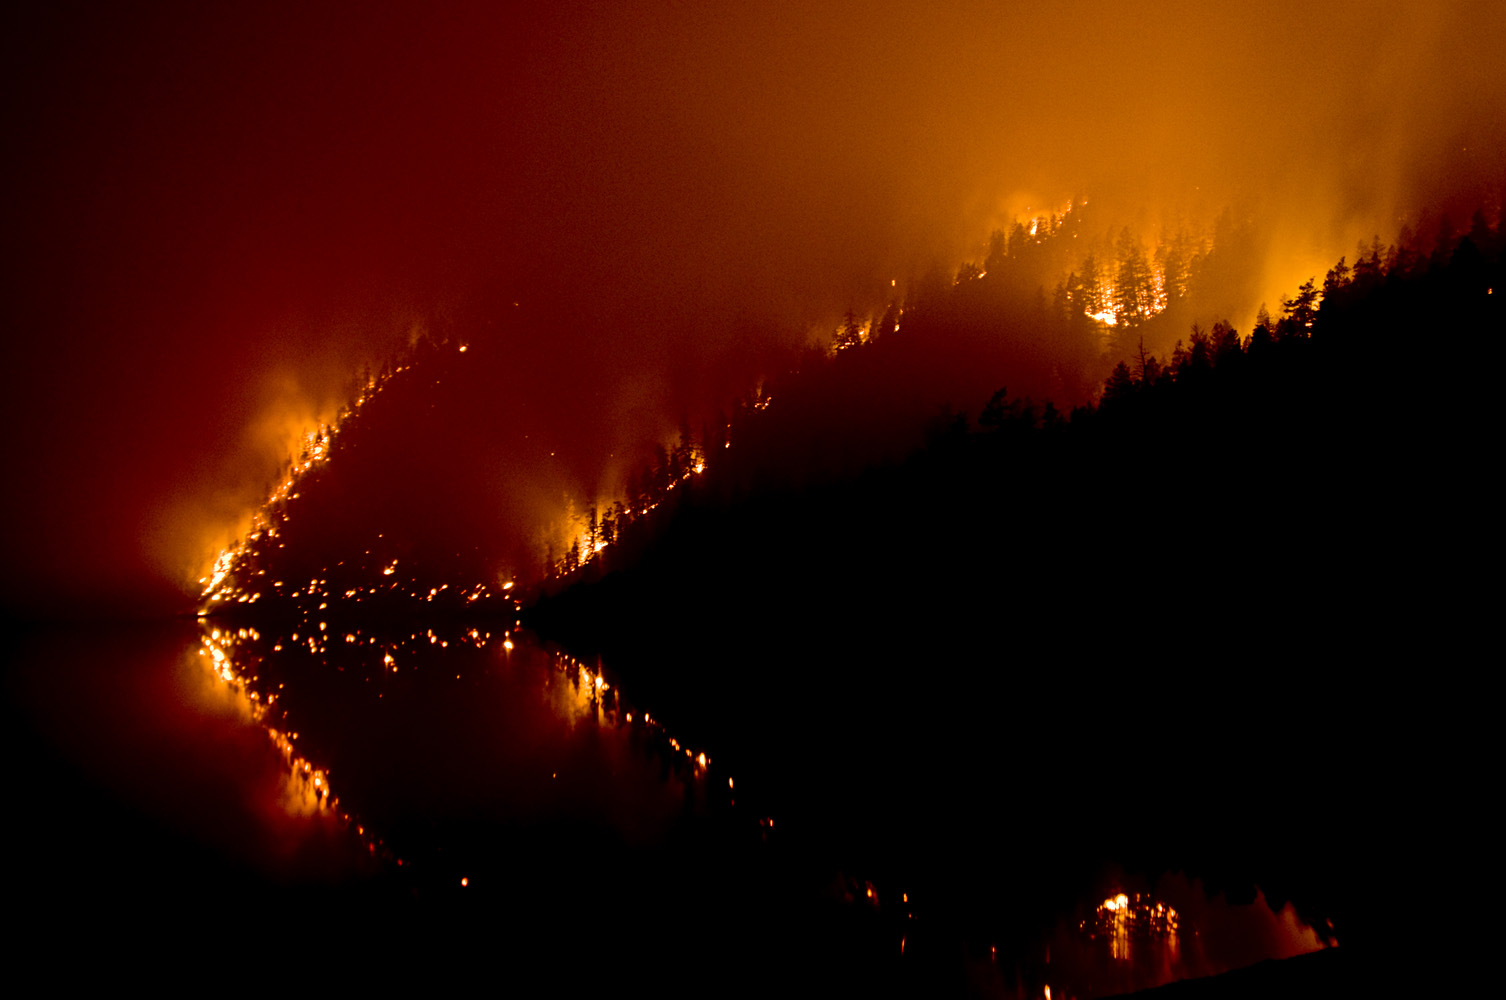 Forest-fire in British Columbia